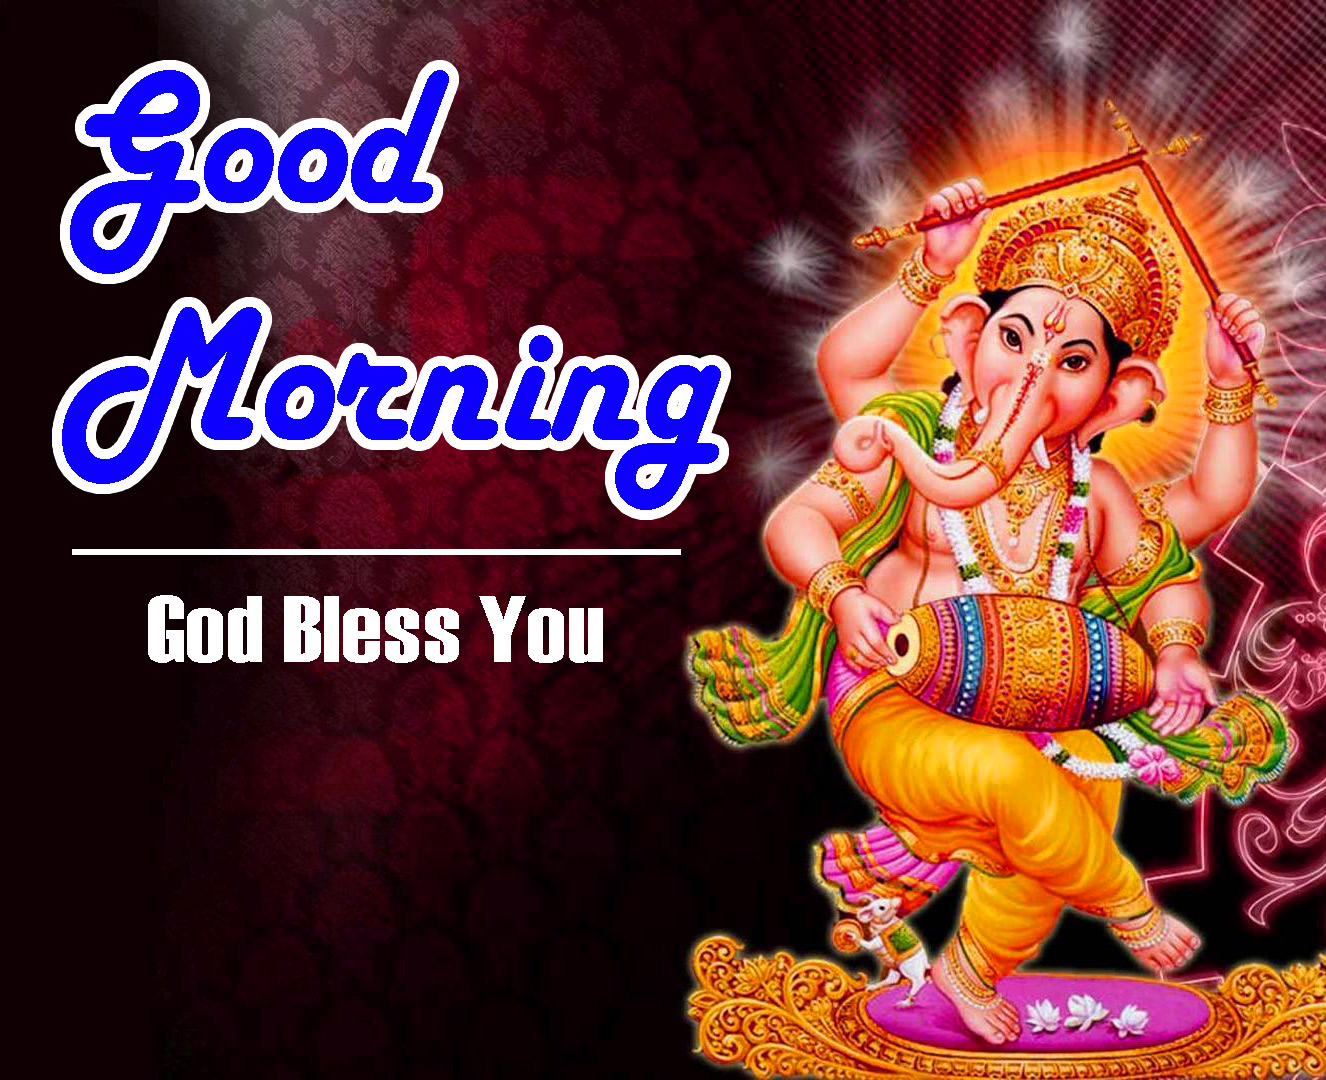 god bless good morning images With God Ganesha